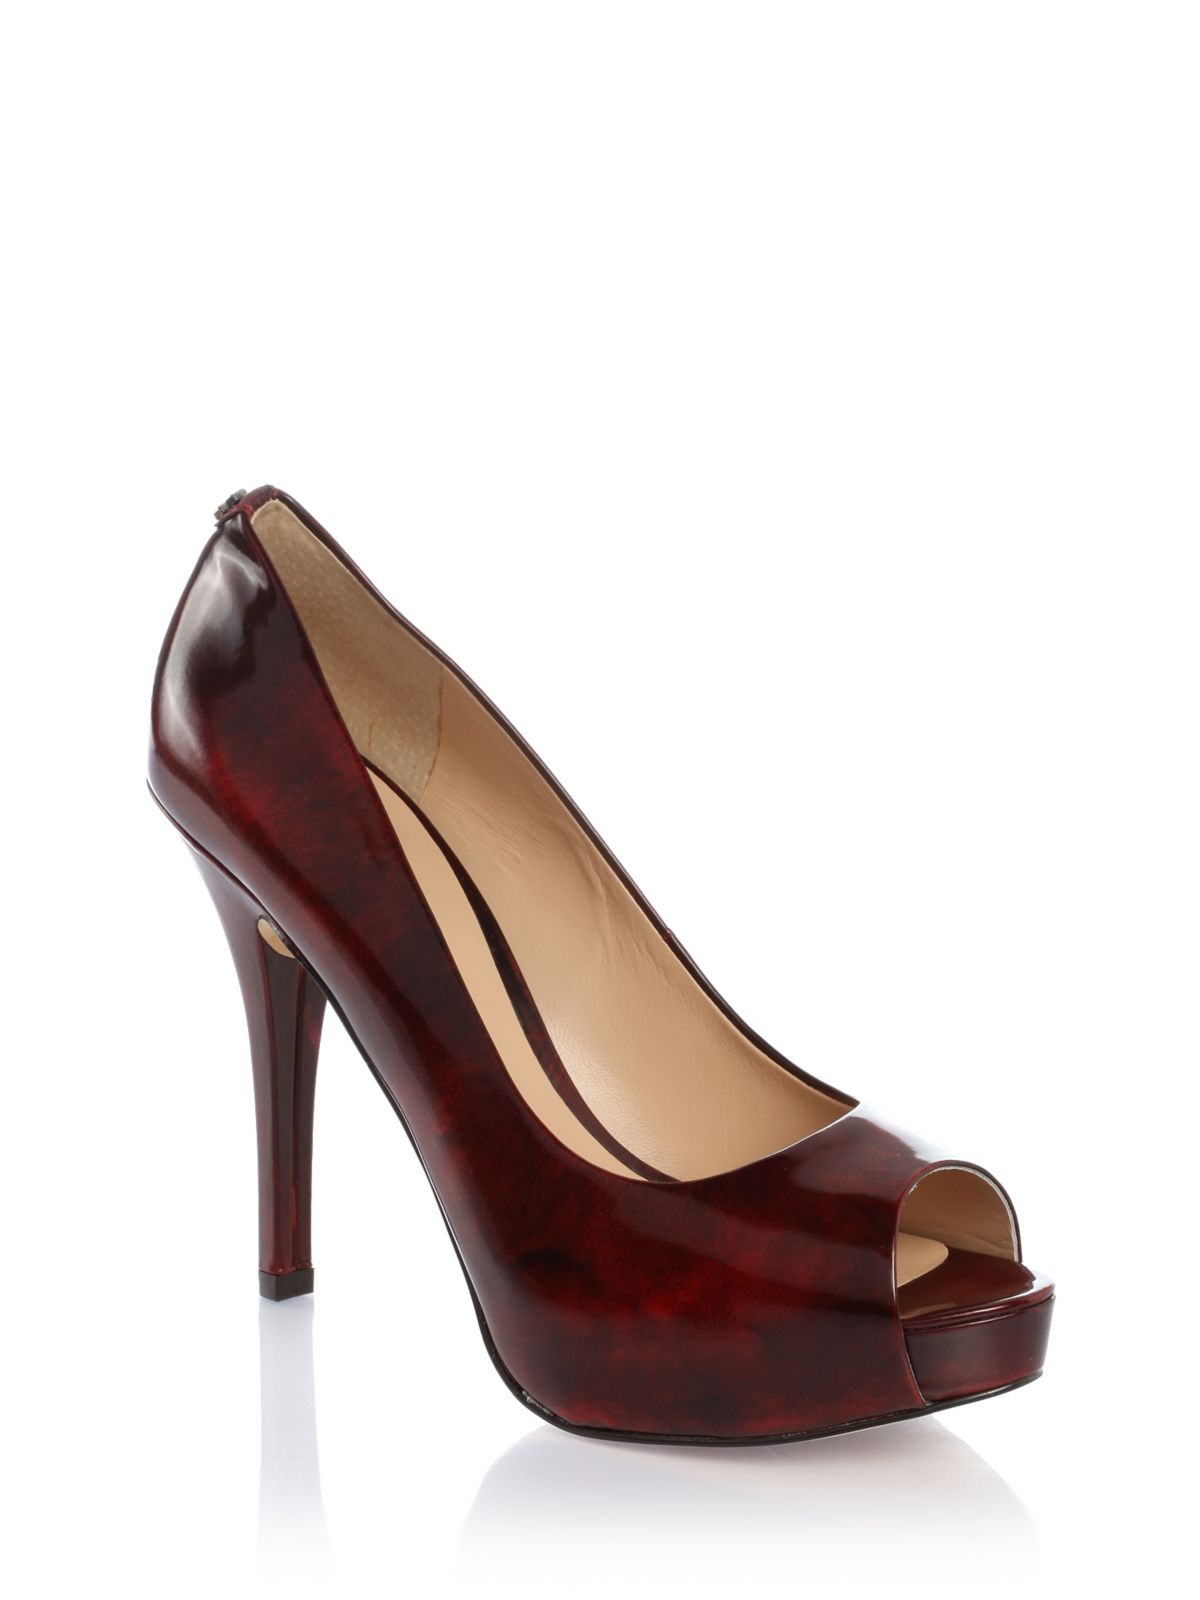 Guess Red Patent Leather Shoes